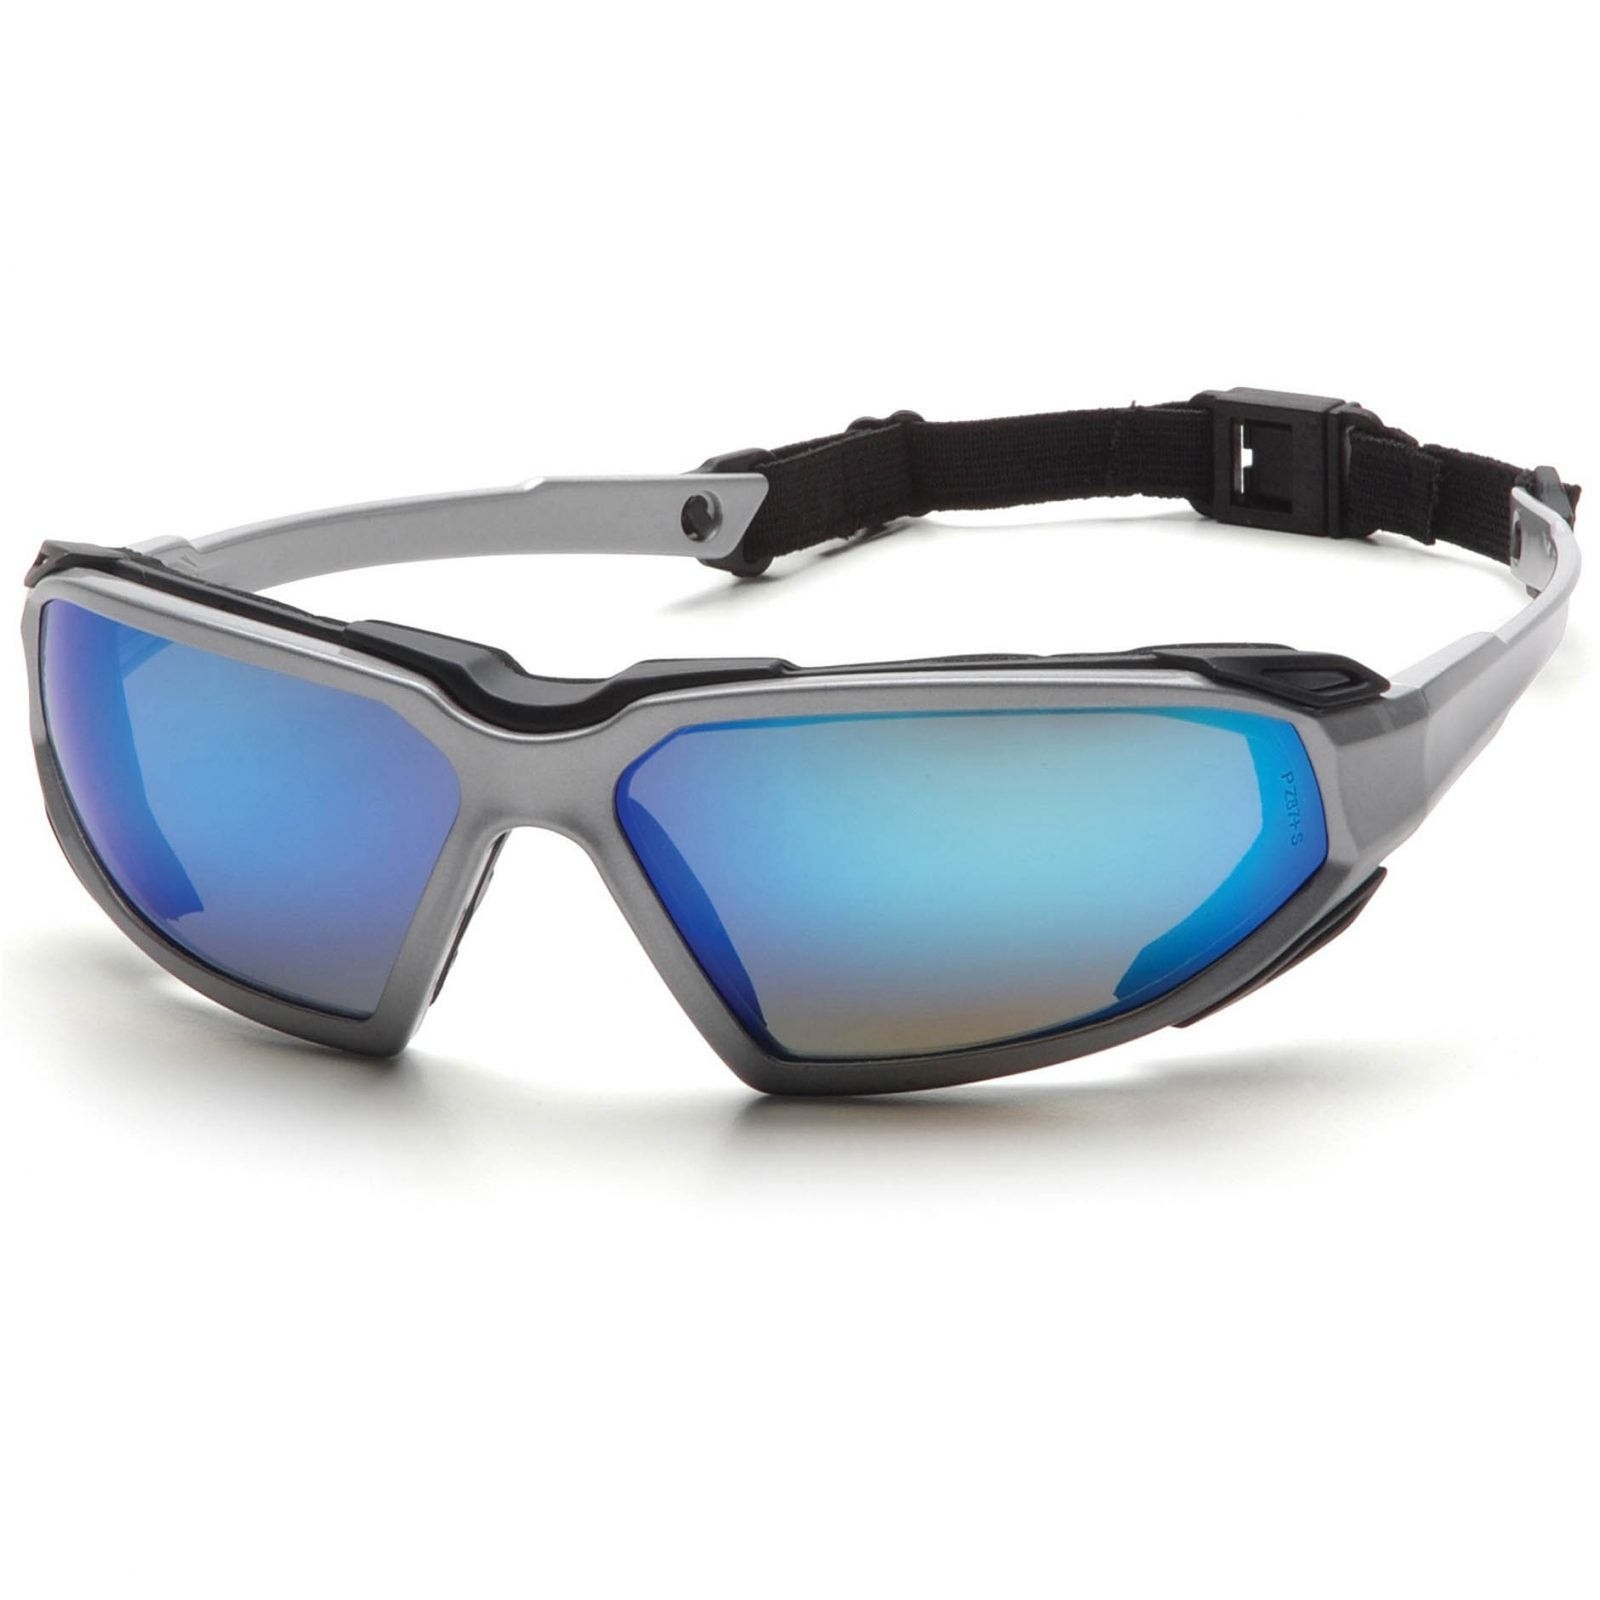 Pyramex Foam Padded Eyewear: HIGHLANDER Black and Silver Frame w/ Strap